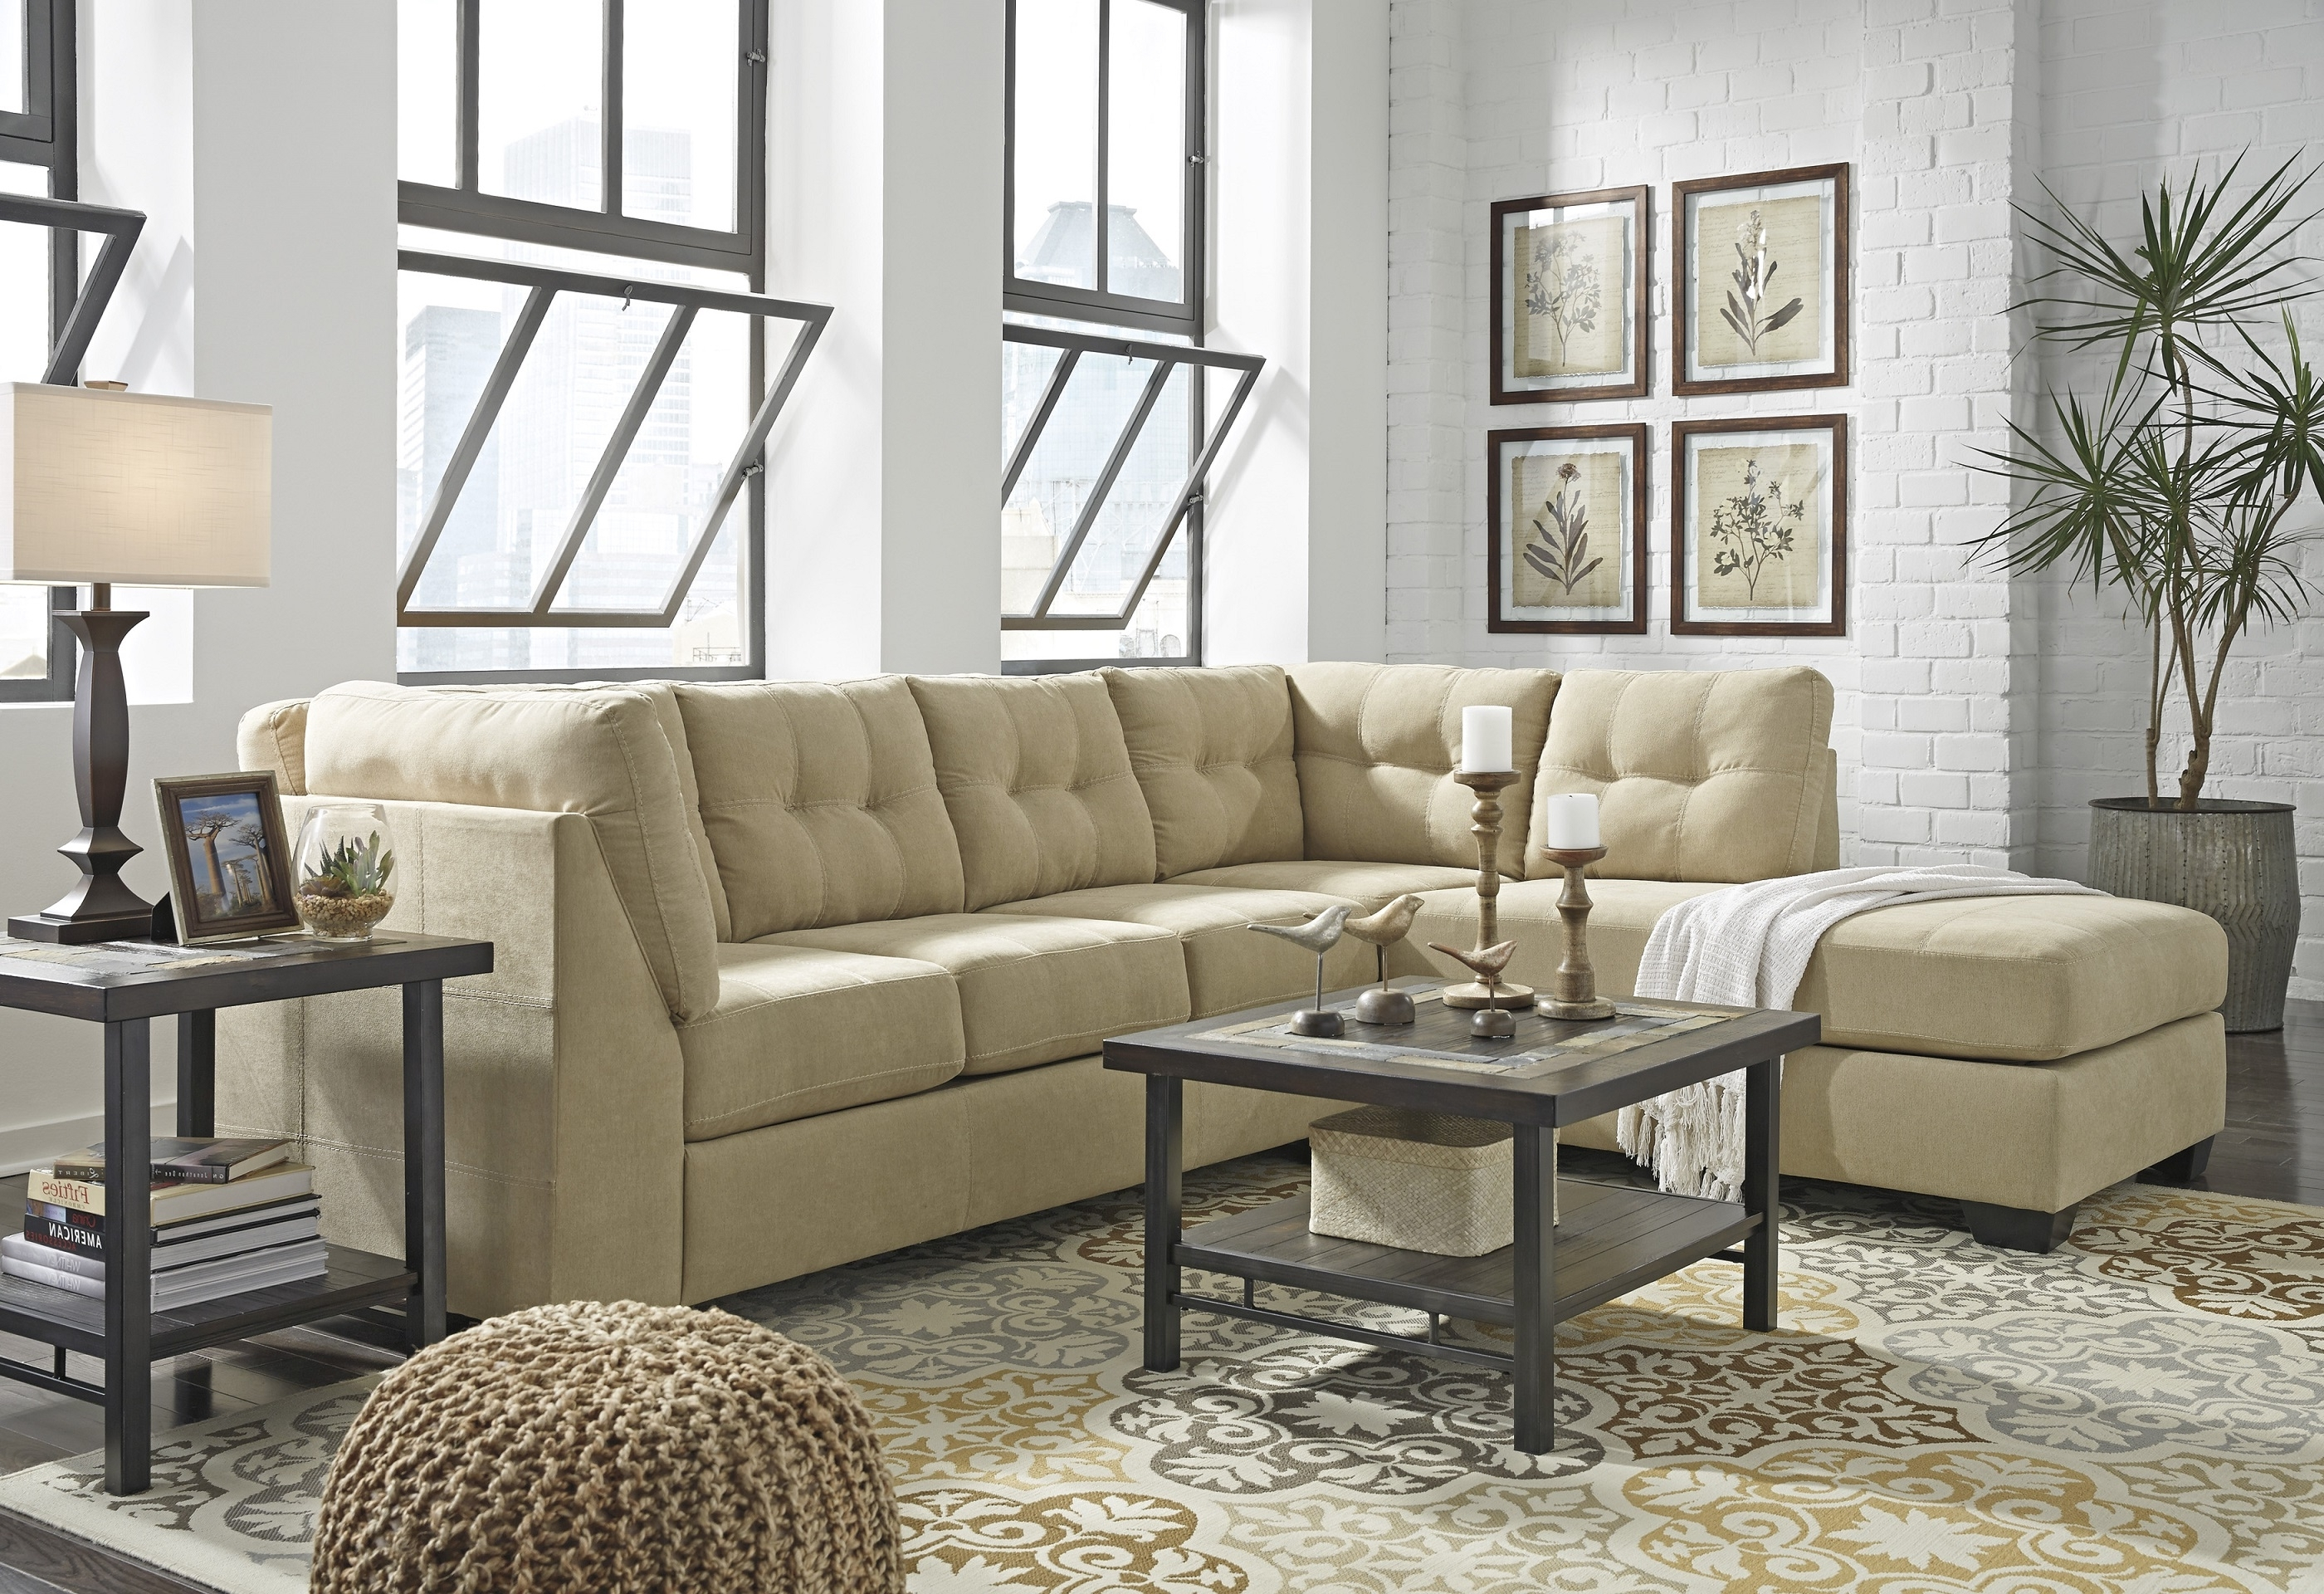 Maier Sofa Sectional 45203 16. Cocoa Colored Upholstery (View 18 of 20)